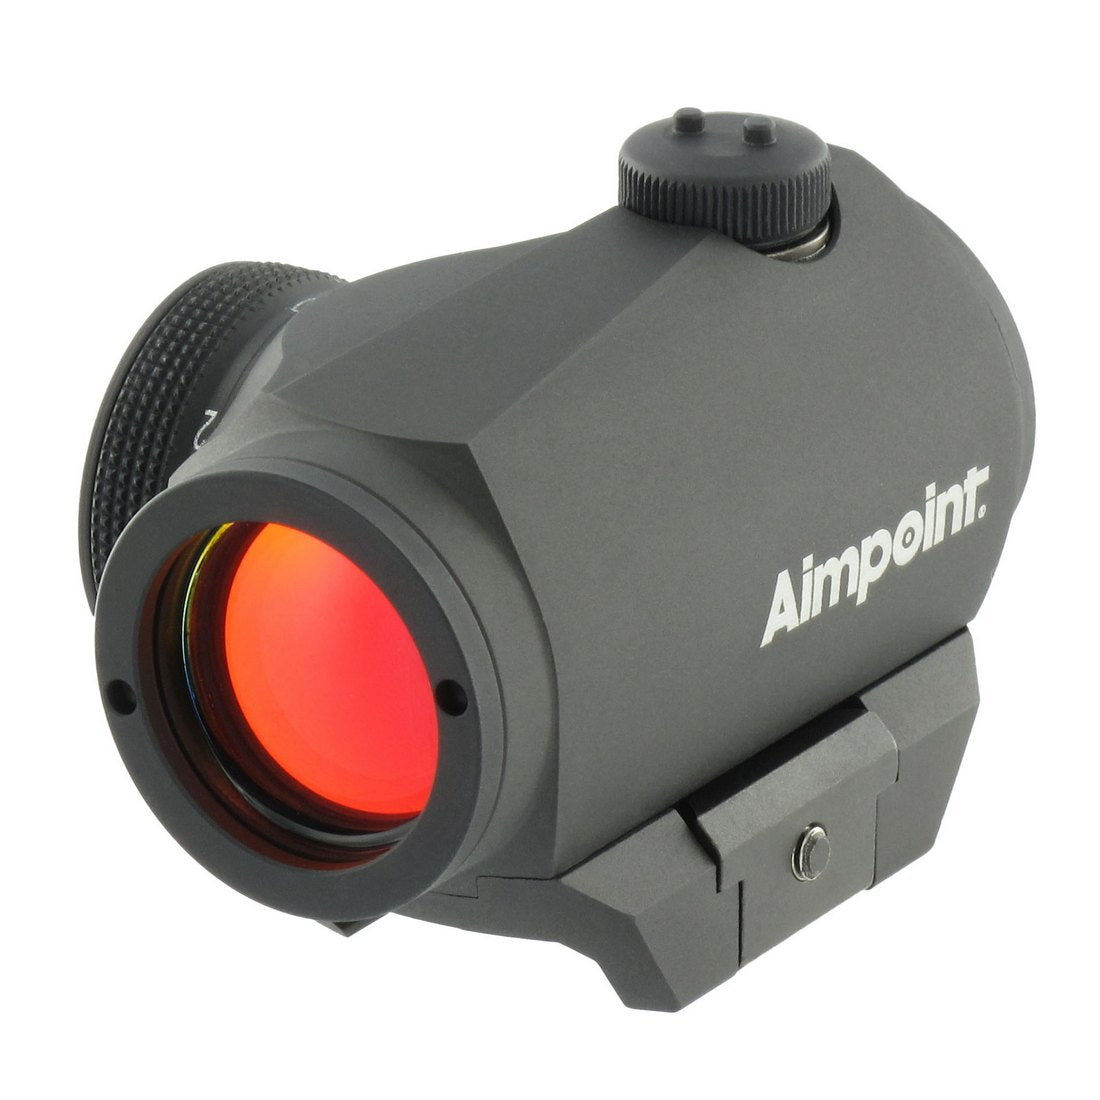 Aimpoint 200018 MICRO H-1 Sight - Security Pro USA